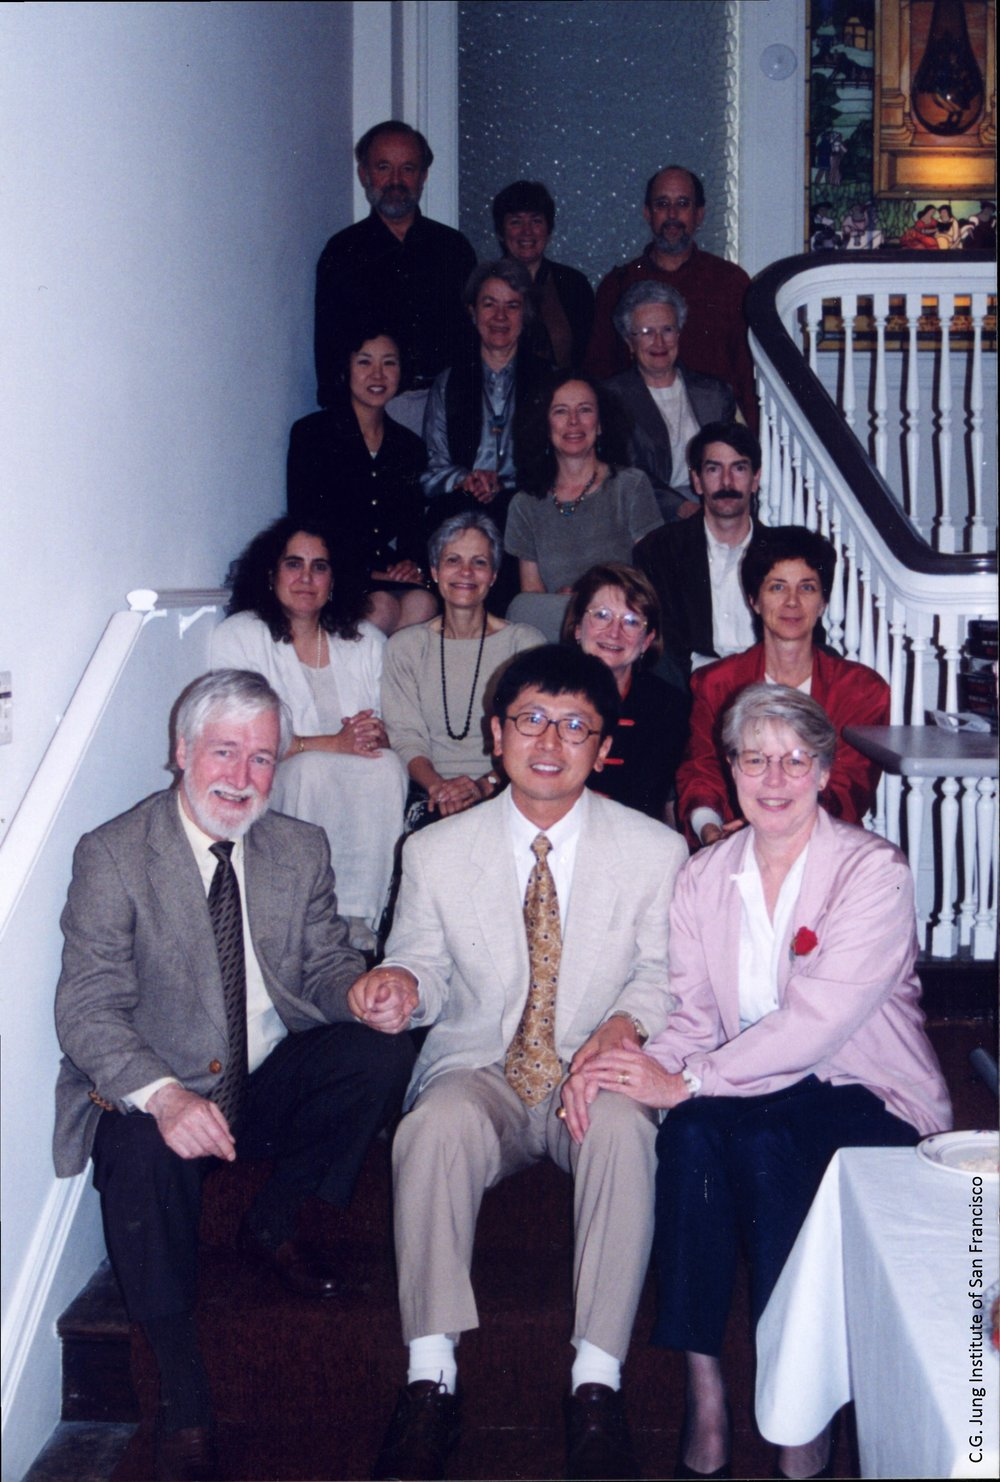 International student Chris Suh at the Institute